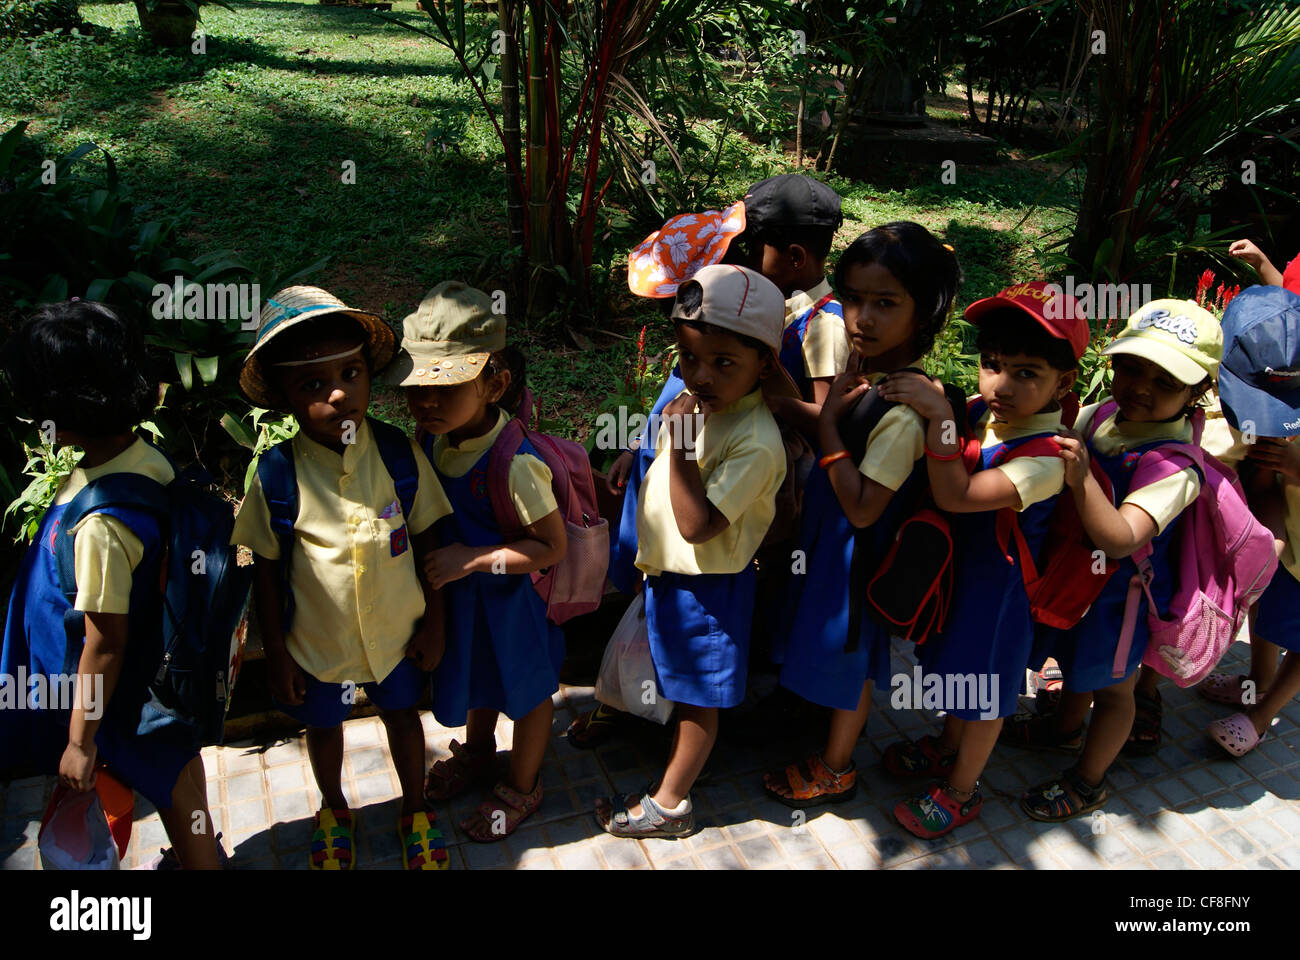 Small Nursery School Children standing in Queue for entering school Bus.A Scene from Kerala,India - Stock Image